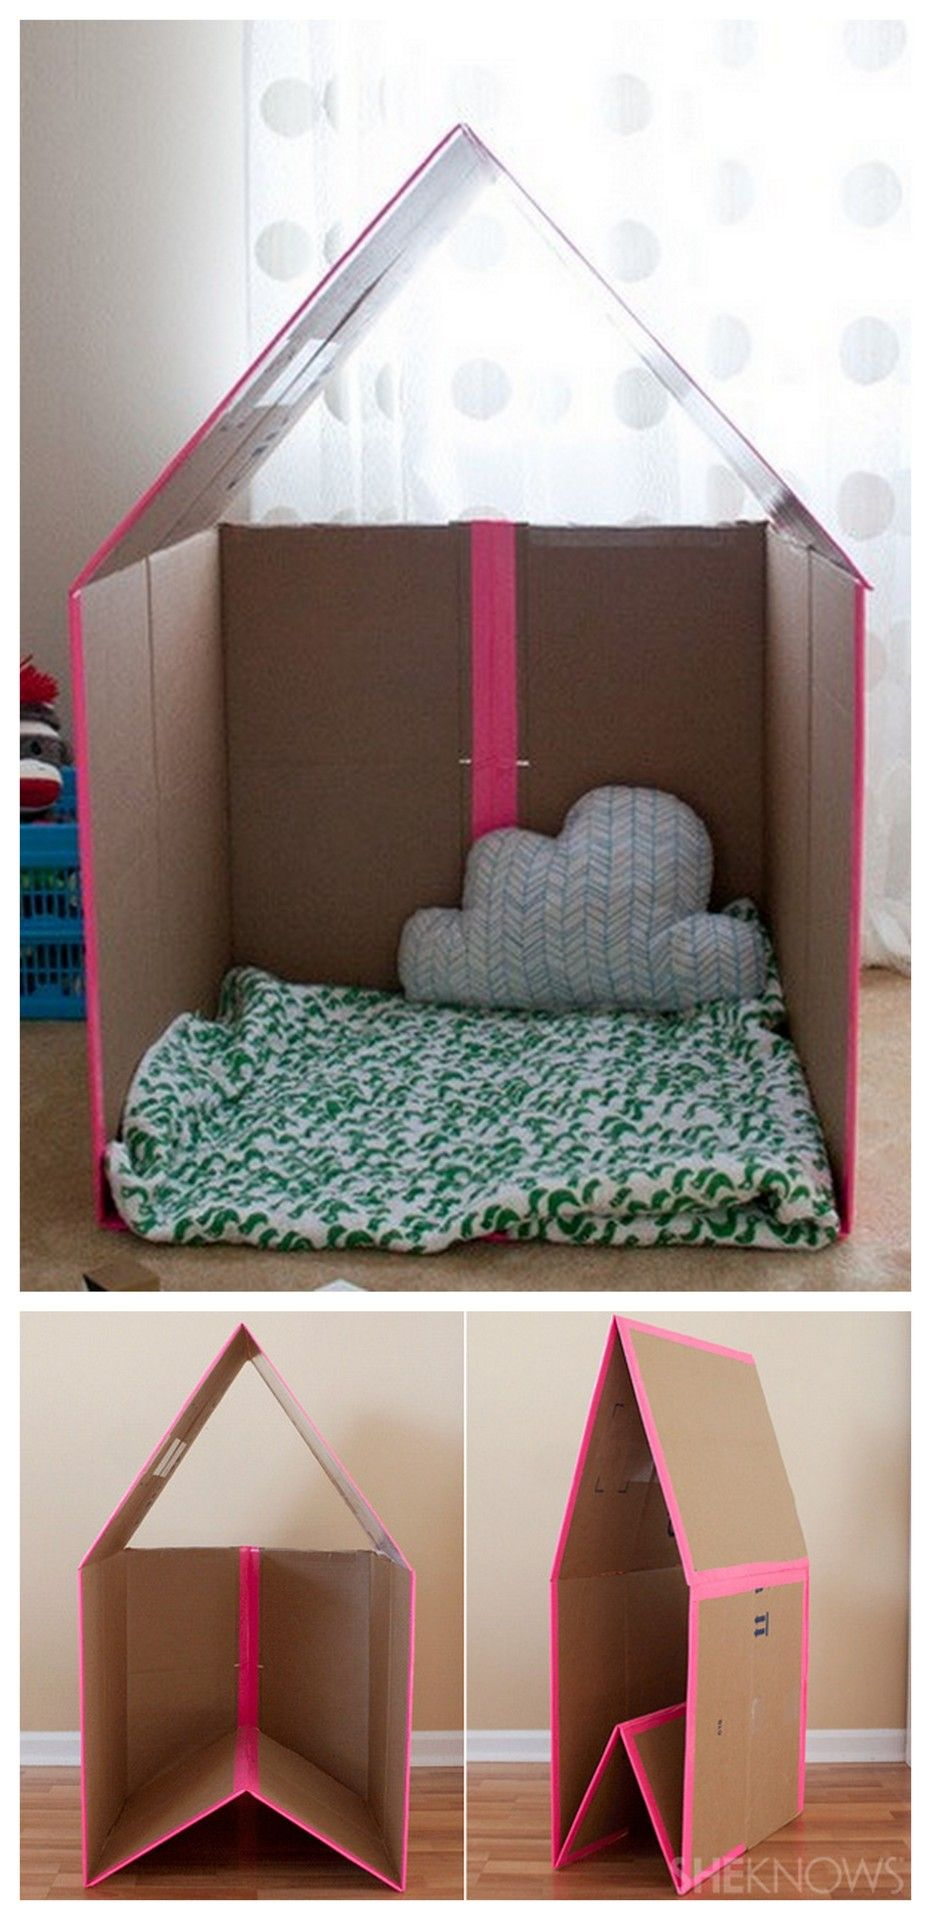 Making A Collapsible Playhouse Out Of A Simple Cardboard Box Is